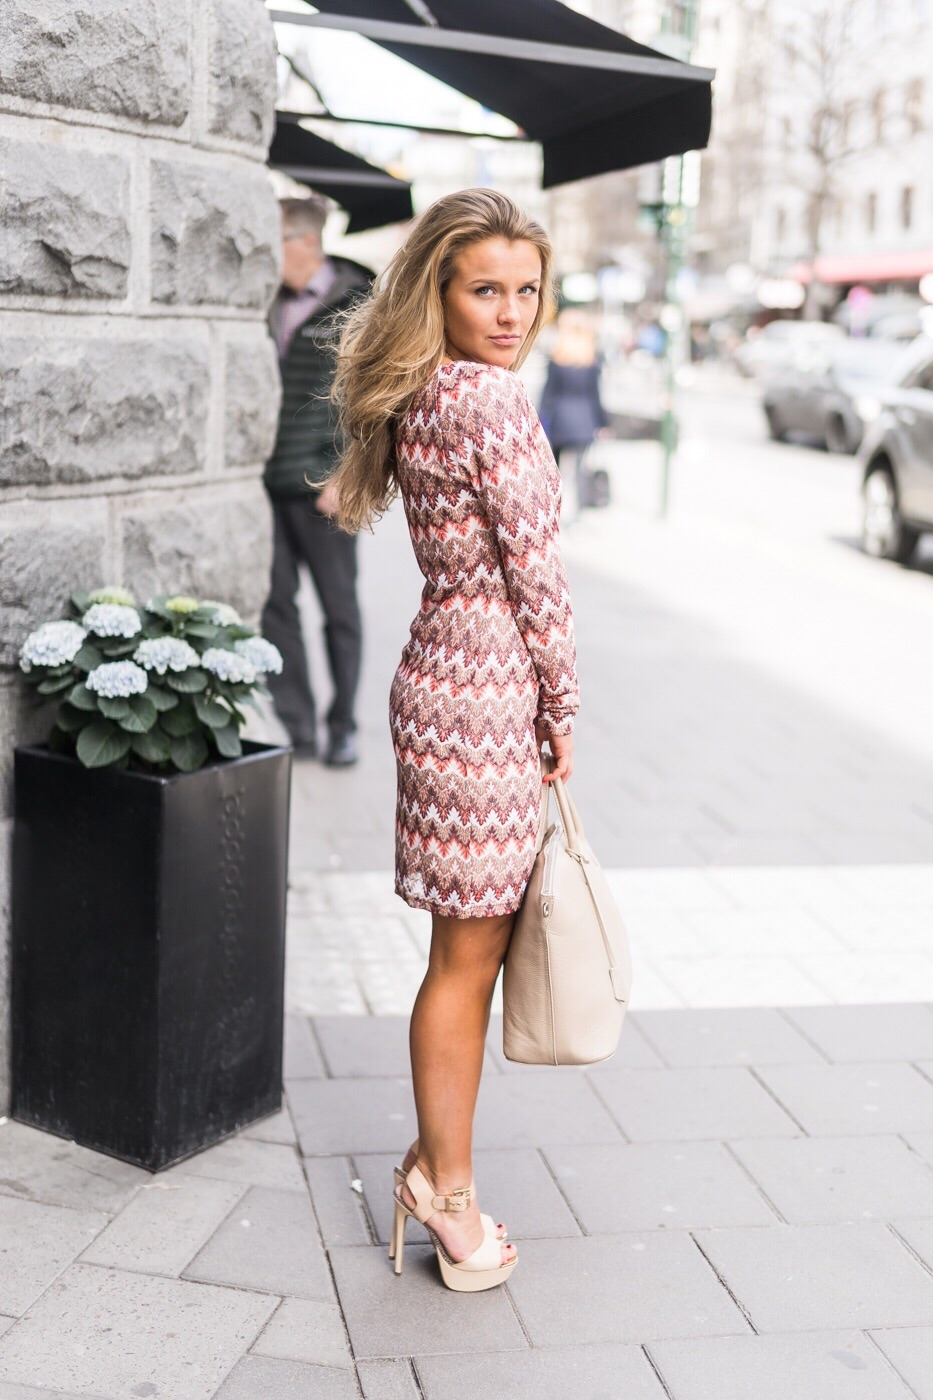 Molly Rustas is wearing a Linnea short print dress from nelly, and the shoes are from River Island